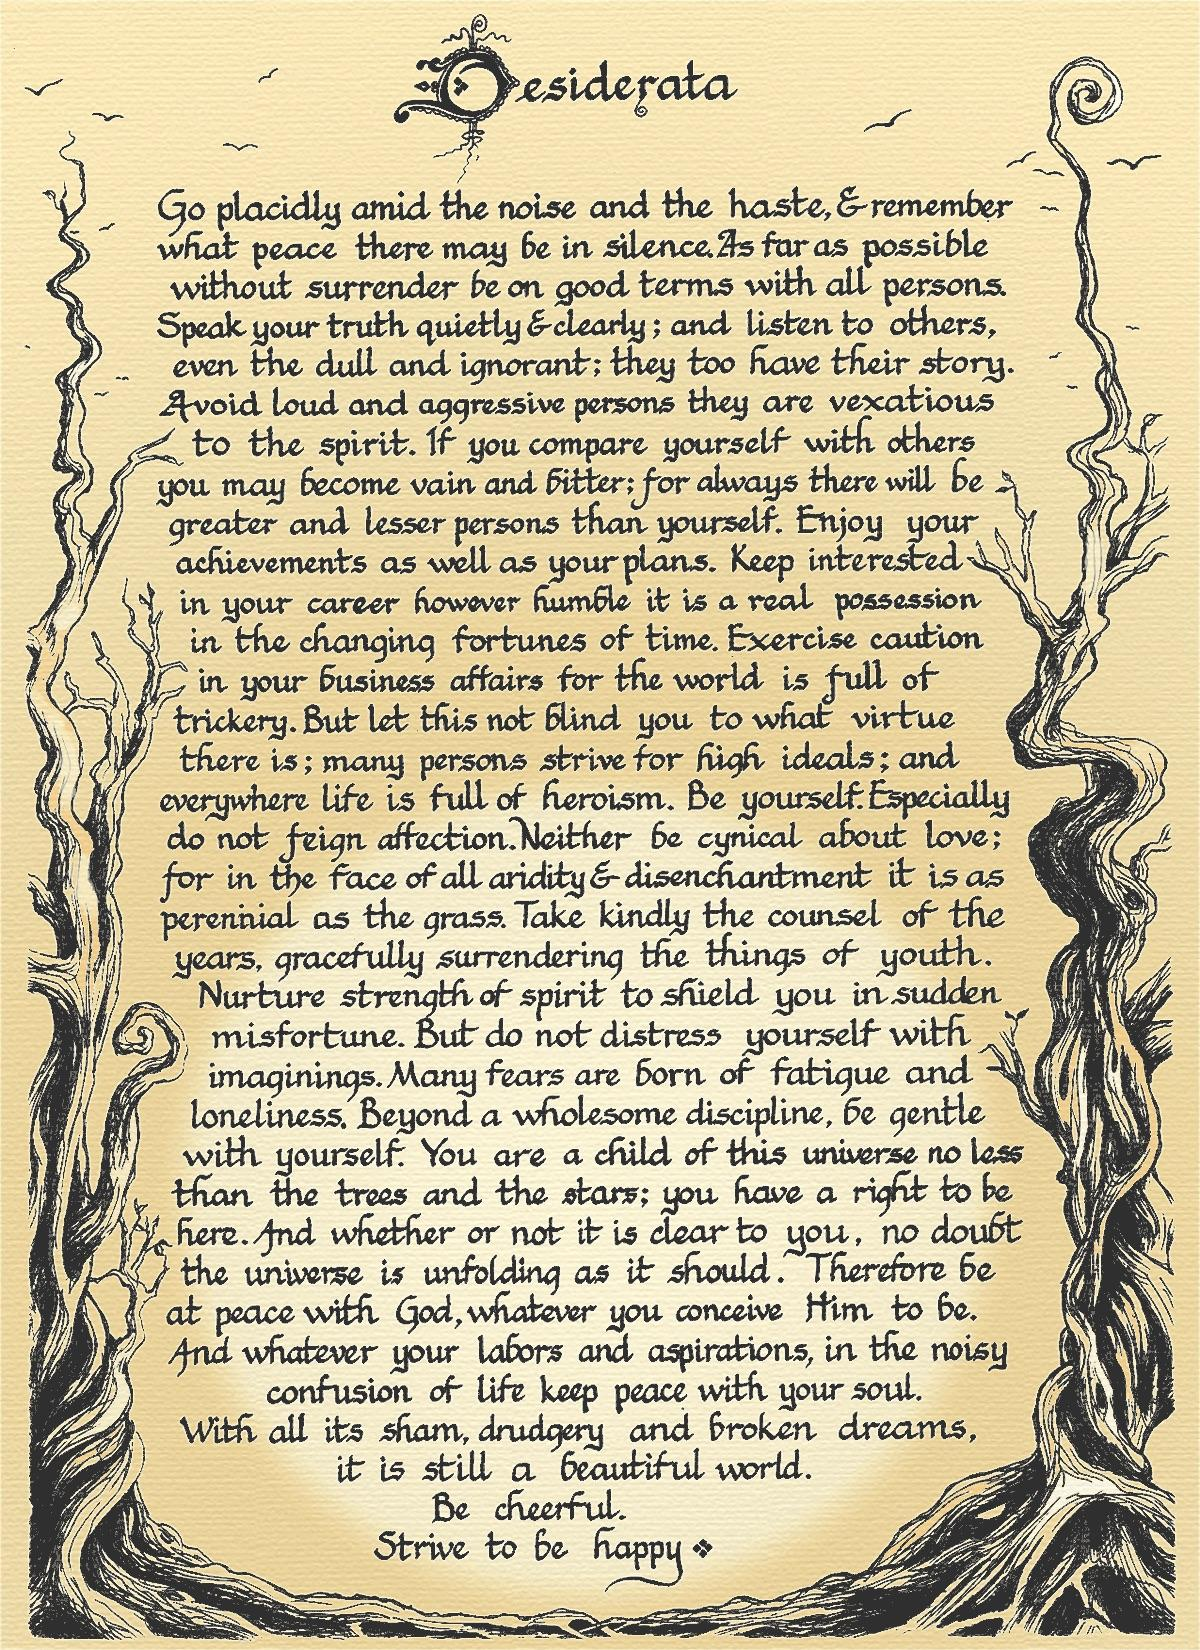 [Image] Go placidly amid the noise and the haste, & remember what peace there may be in silence. Desiderata by Max Ehrmann